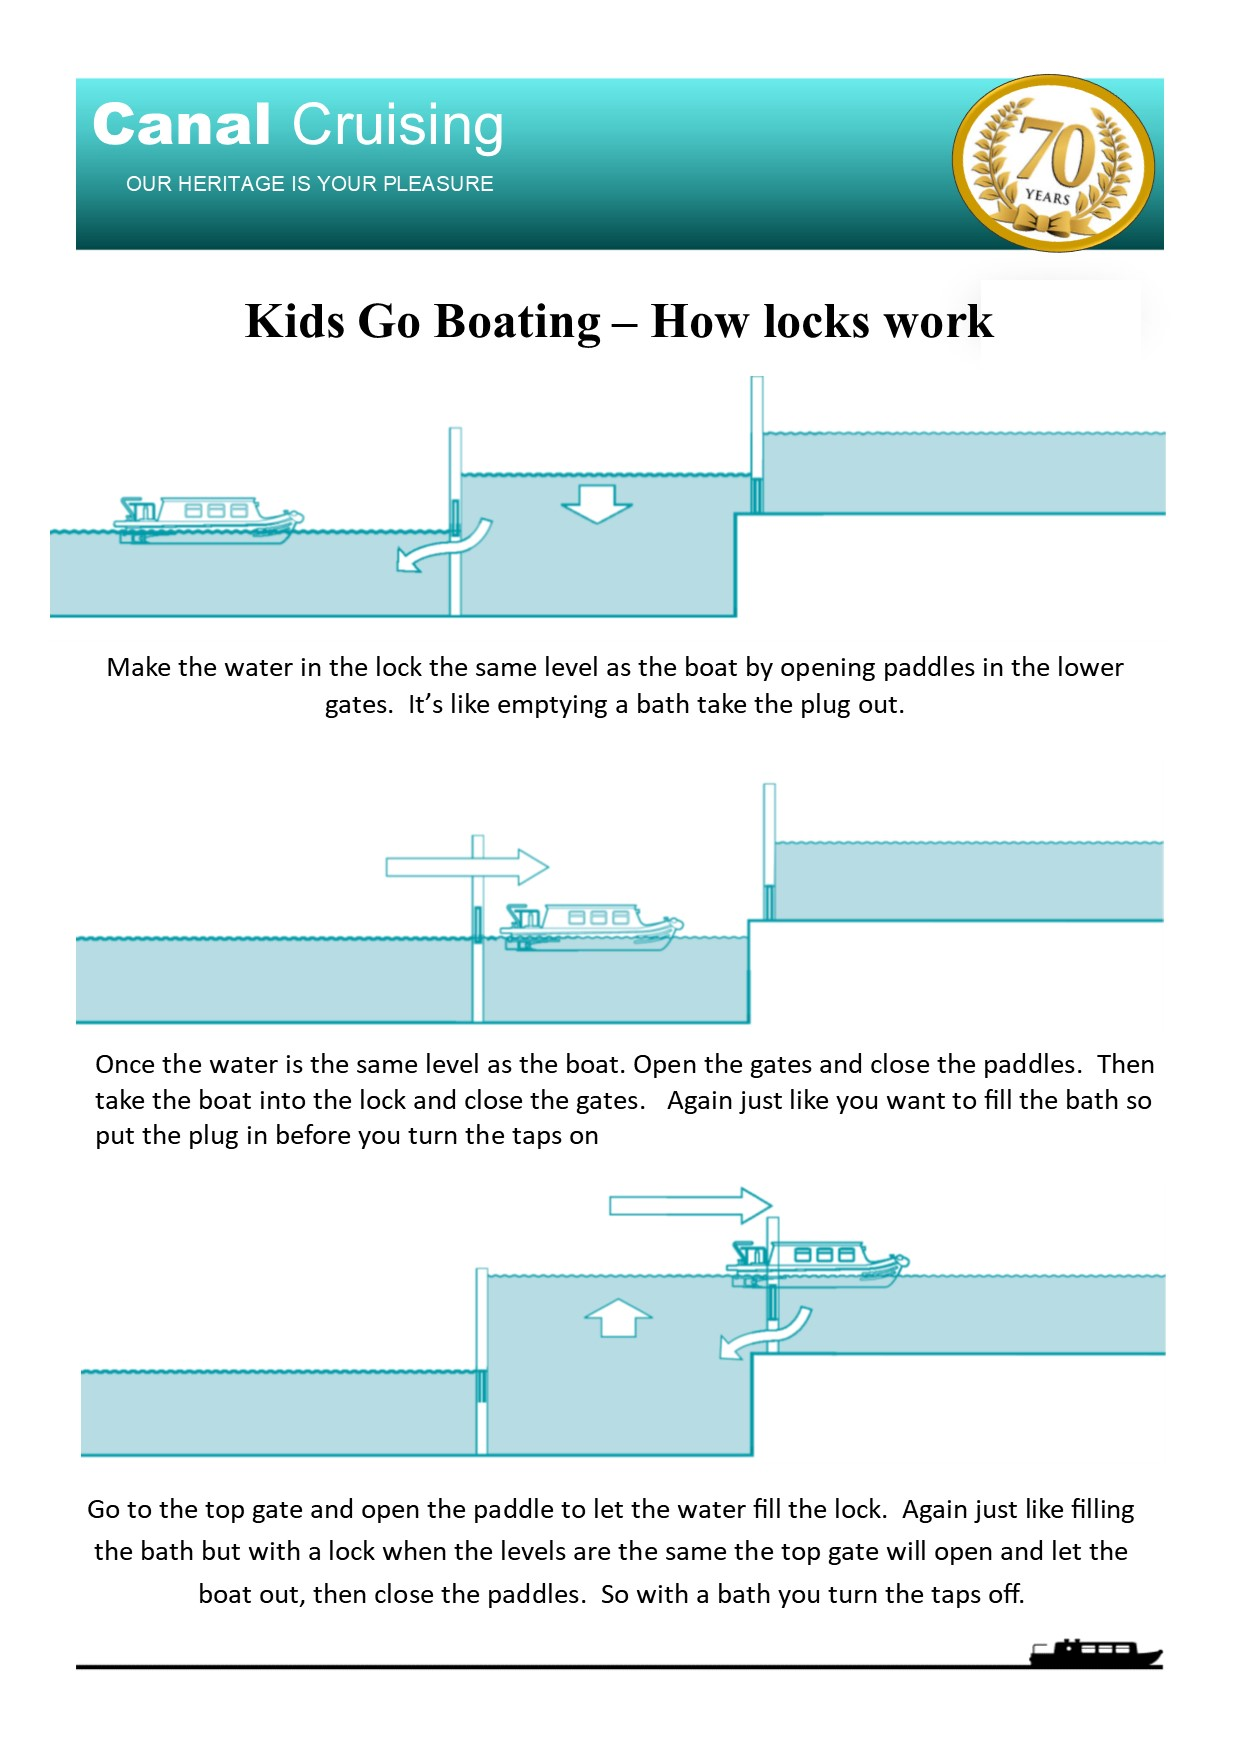 Kids go boating how locks work